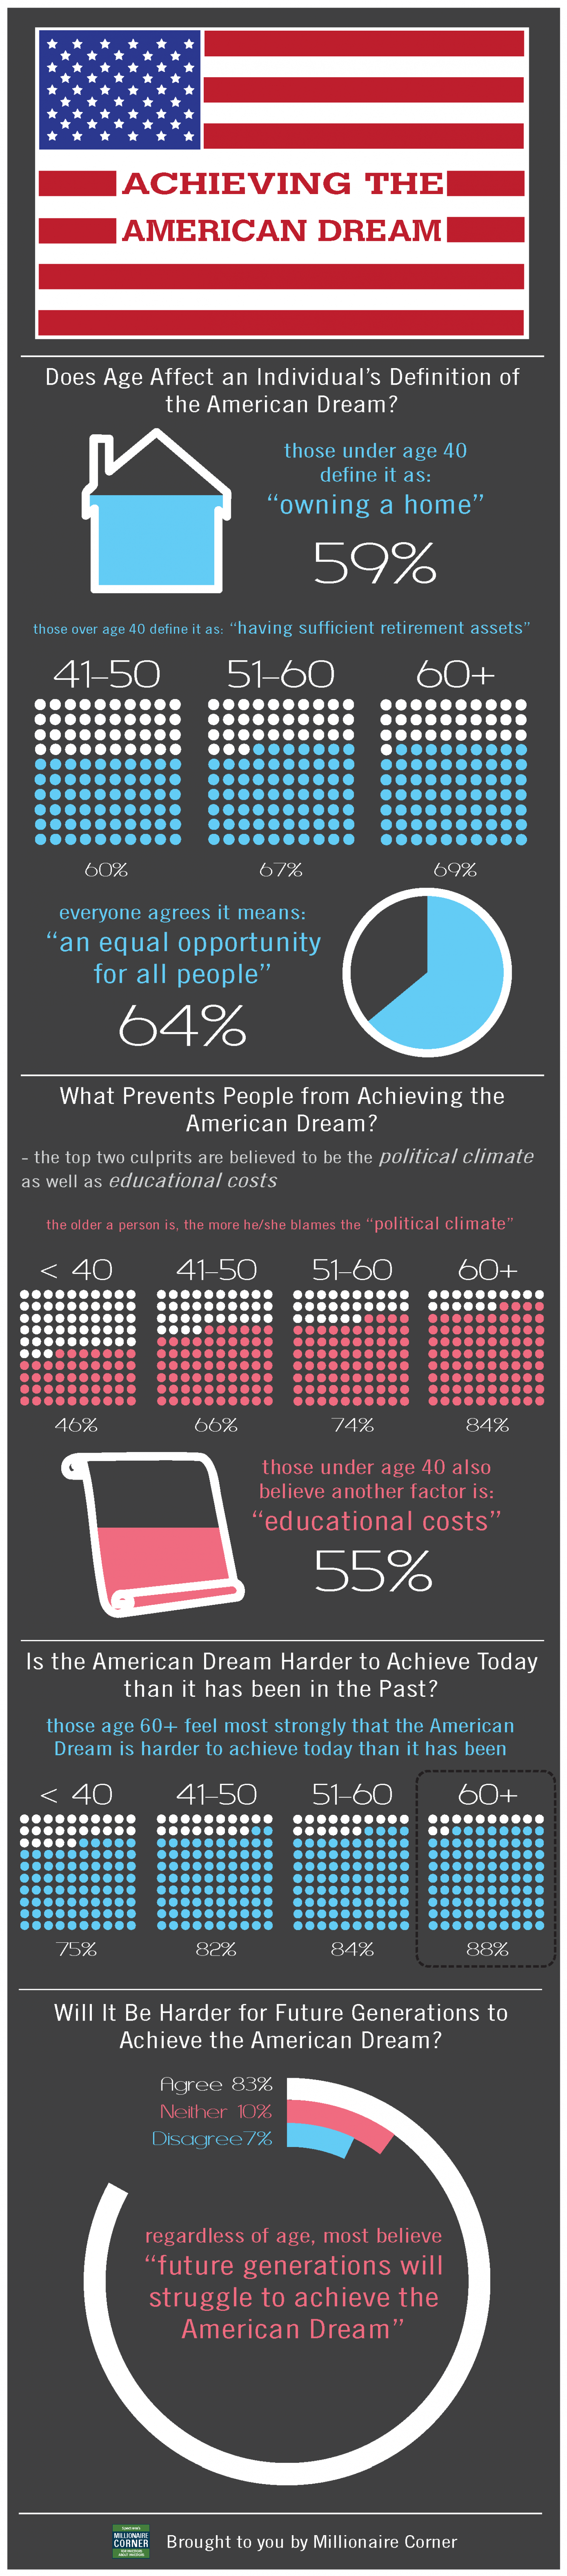 Achieving the American Dream Infographic